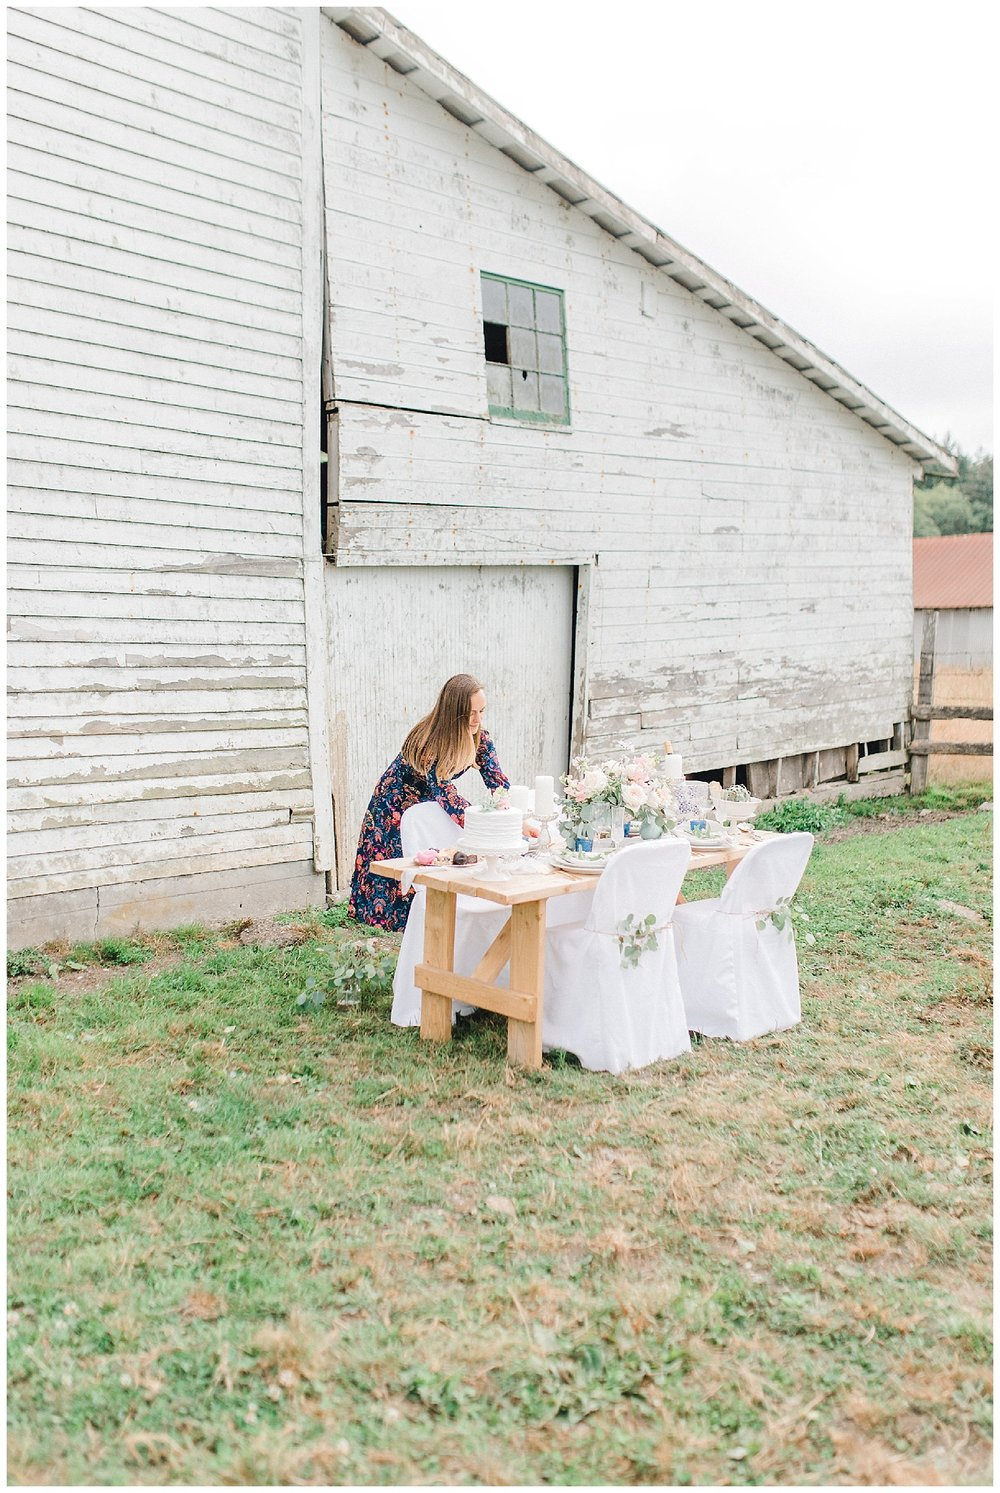 Emma Rose Company Dream Chasers Workshop and Education for Photographer | Light and Airy Rose Ranch Dream Barn Venue Wedding_0018.jpg